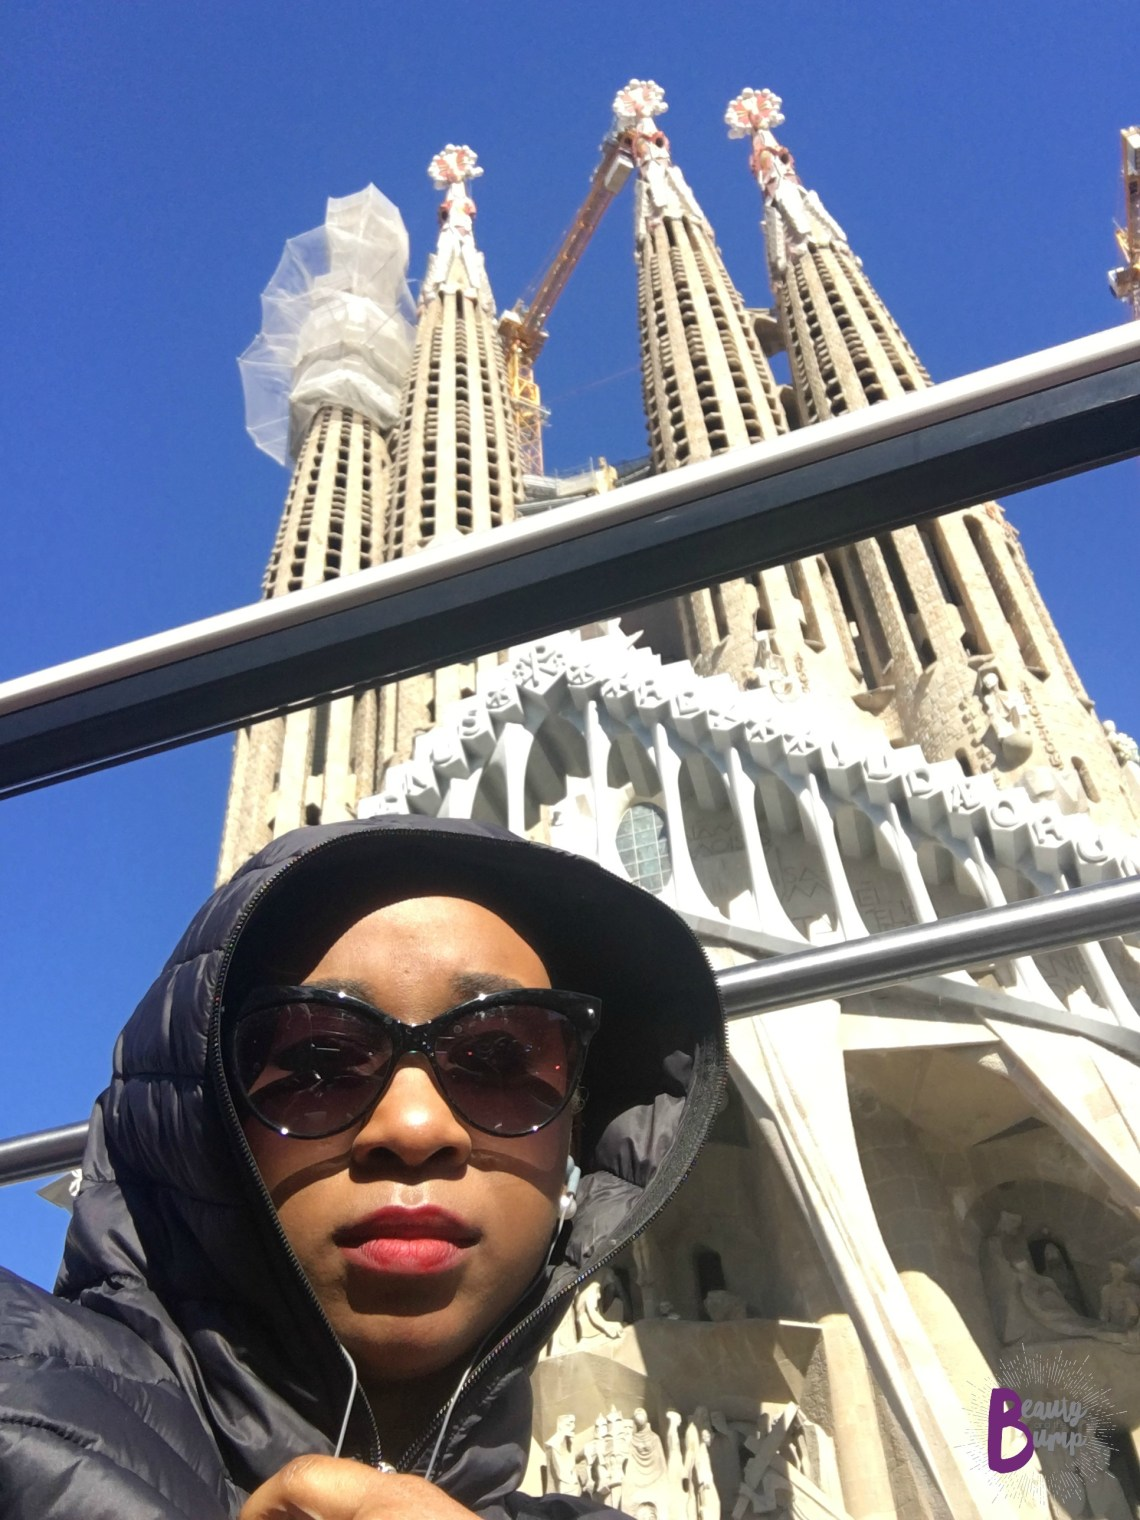 Hop-on, Hop-off Bus Tour Barcelona Sagrada Familia